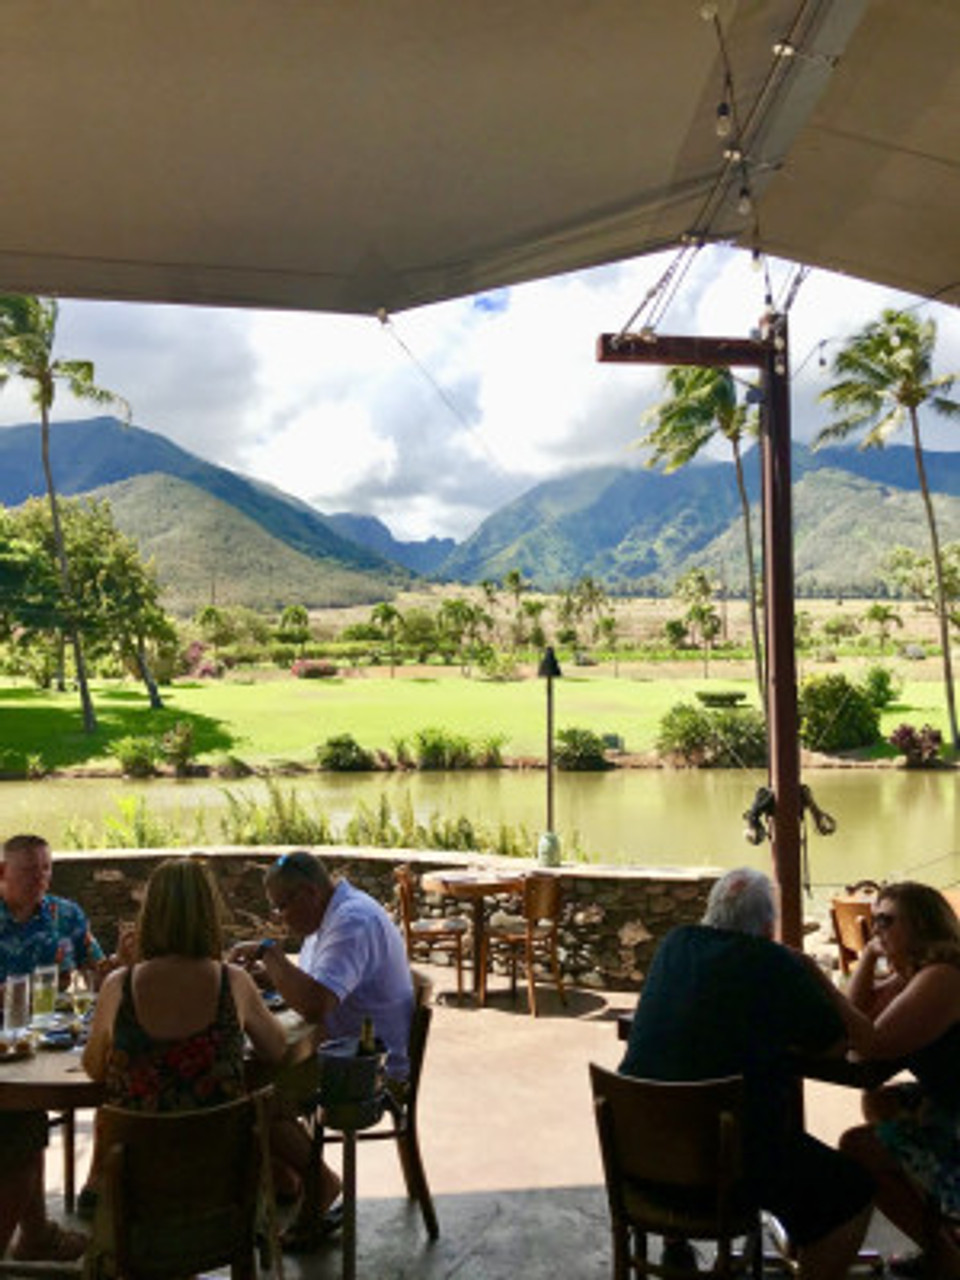 Restaurant view of stunning mountain landscape in Maui.